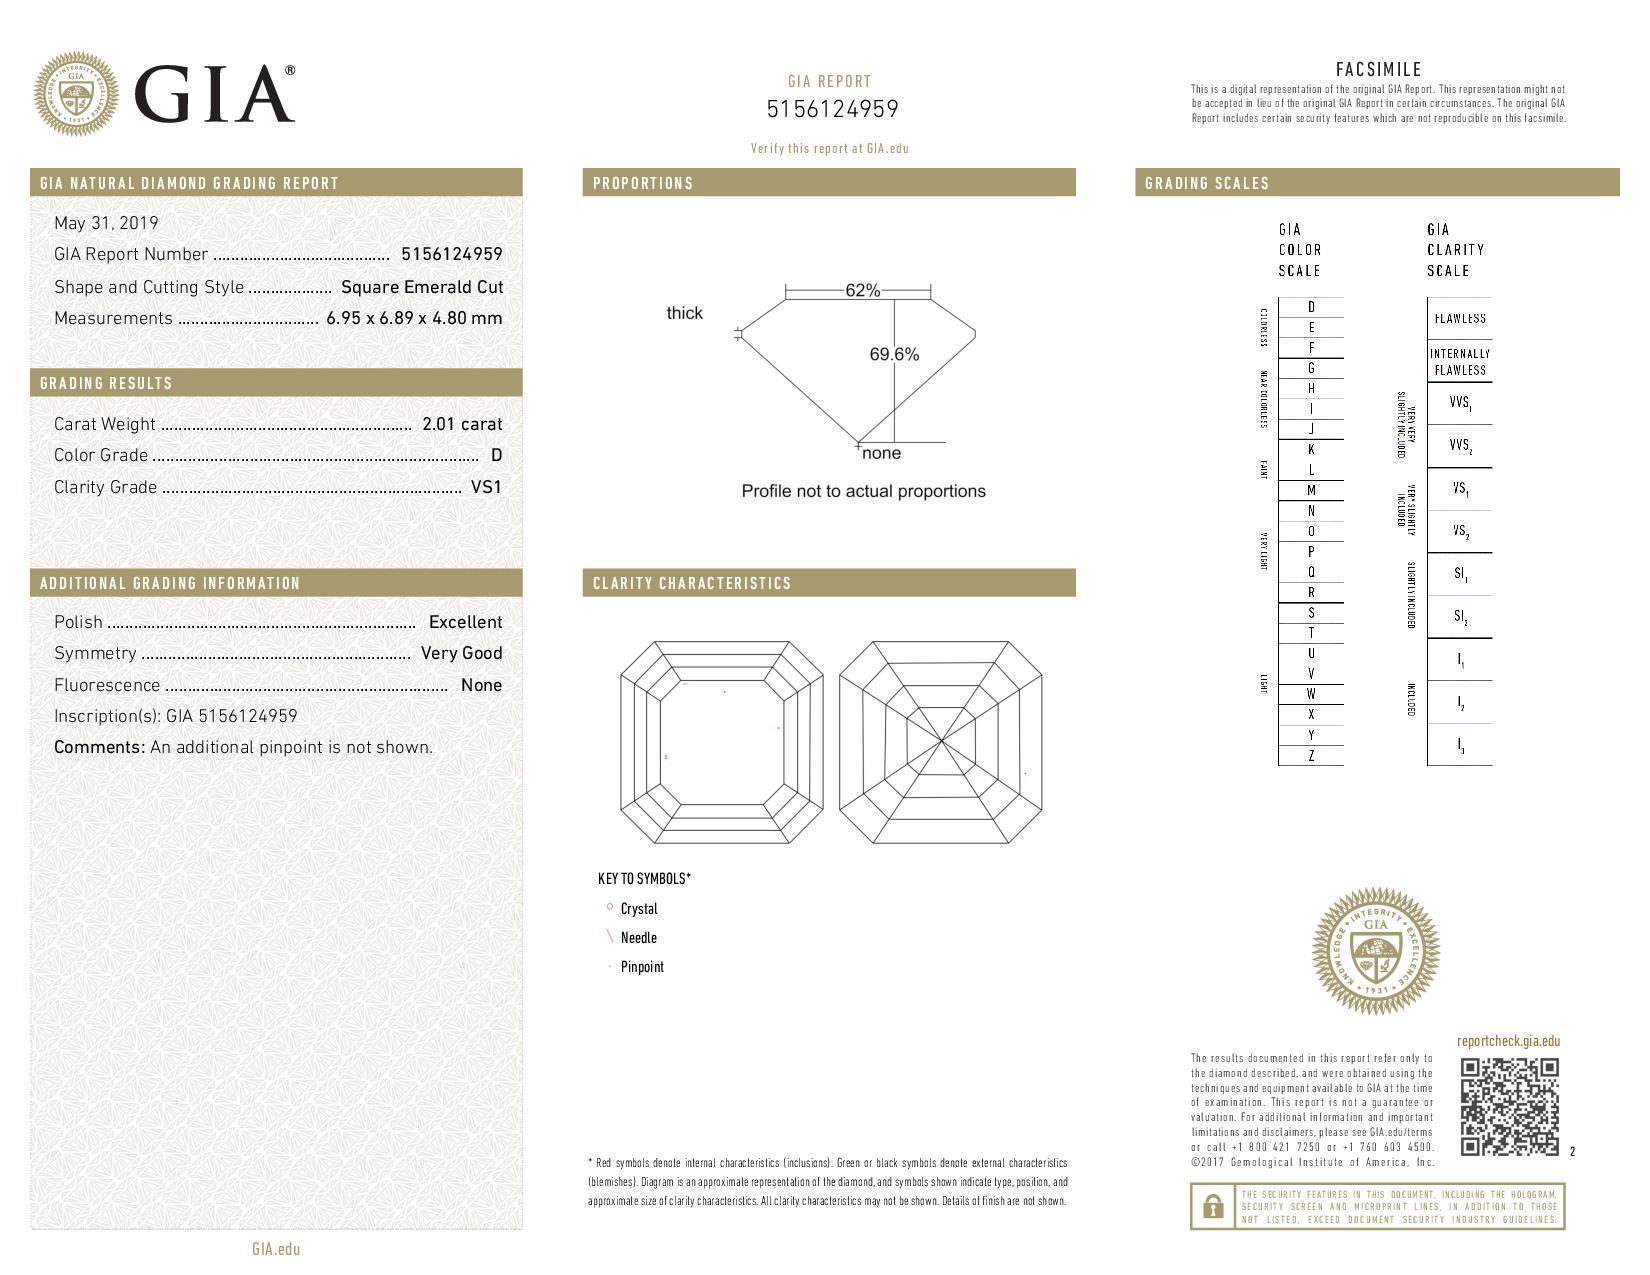 This is a 2.01 carat asscher shape, D color, VS1 clarity natural diamond accompanied by a GIA grading report.